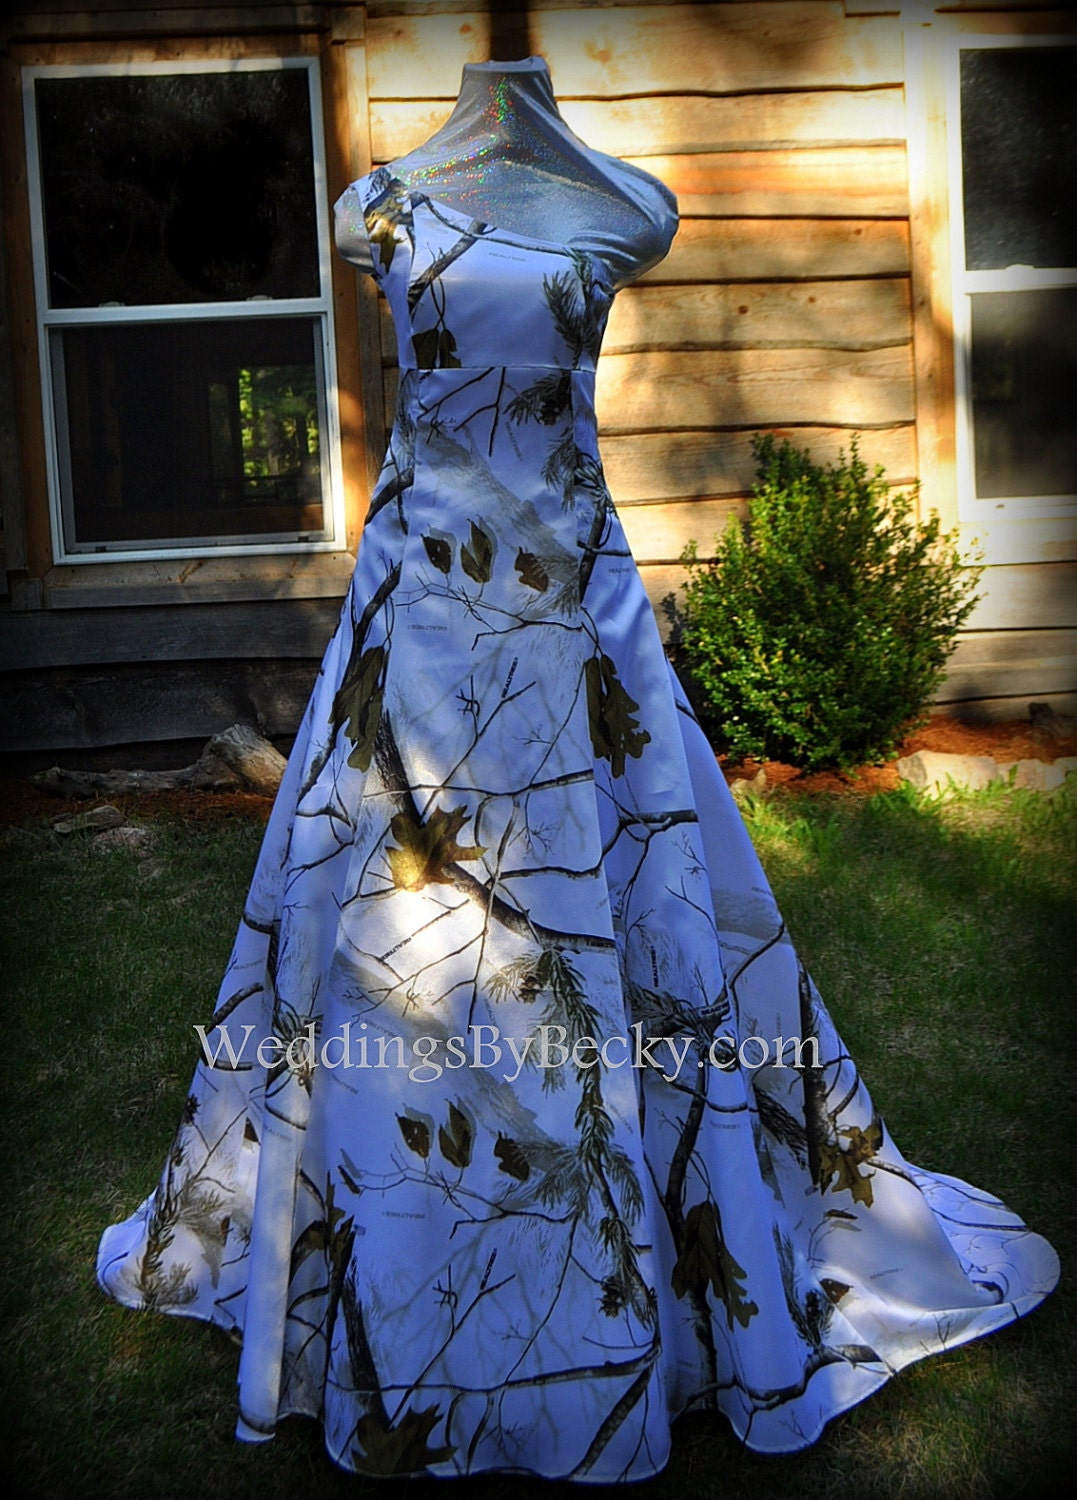 Realtree snow camo wedding dress 39 abigail 39 made only in for Snow camo wedding dresses